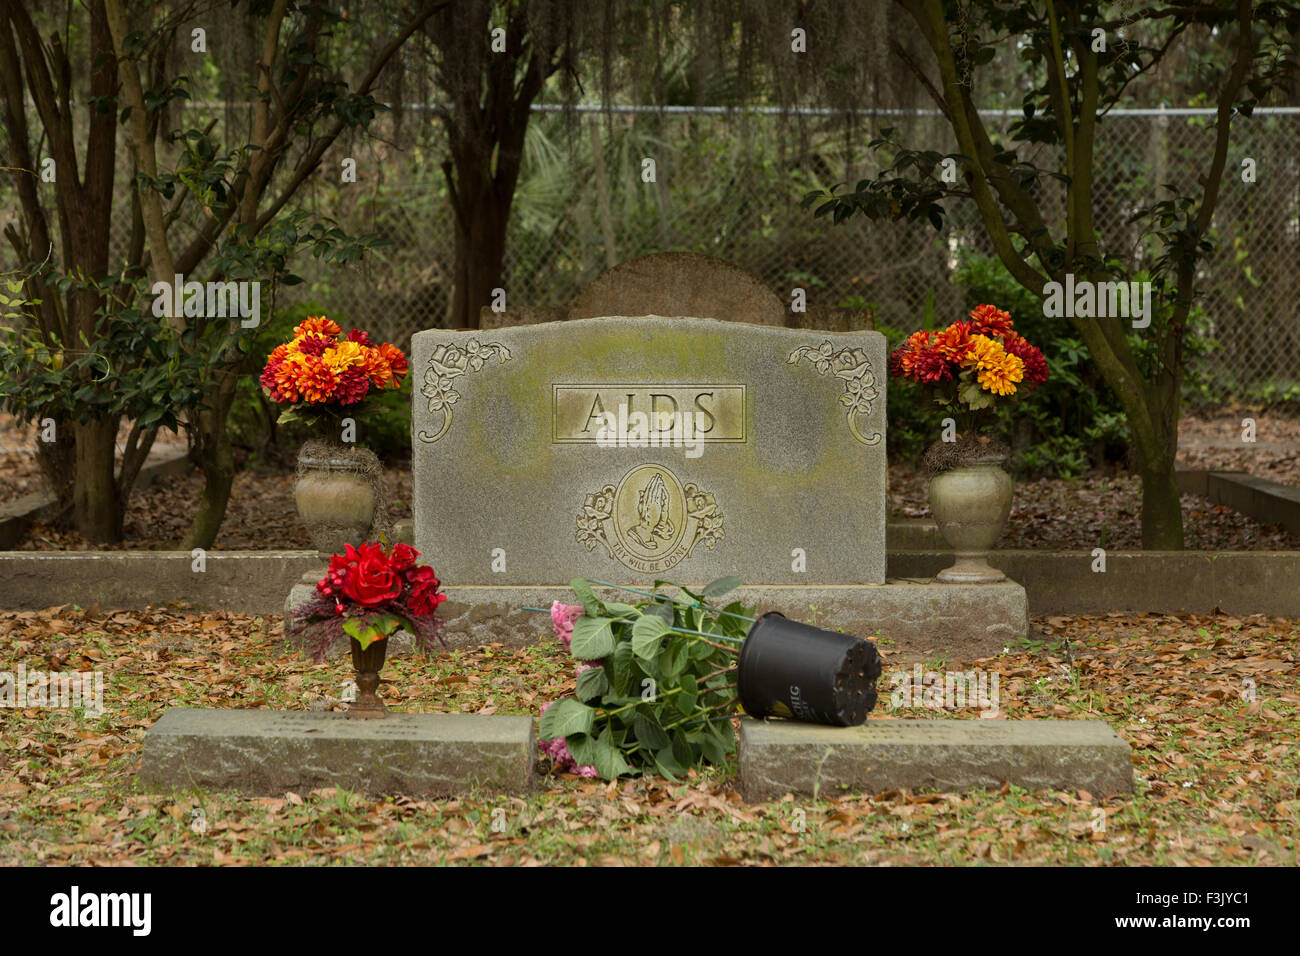 A colorful photograph of Bonaventure Cemetery in Savannah, Georgia. Here is a gravestone that says 'AIDS'. Stock Photo